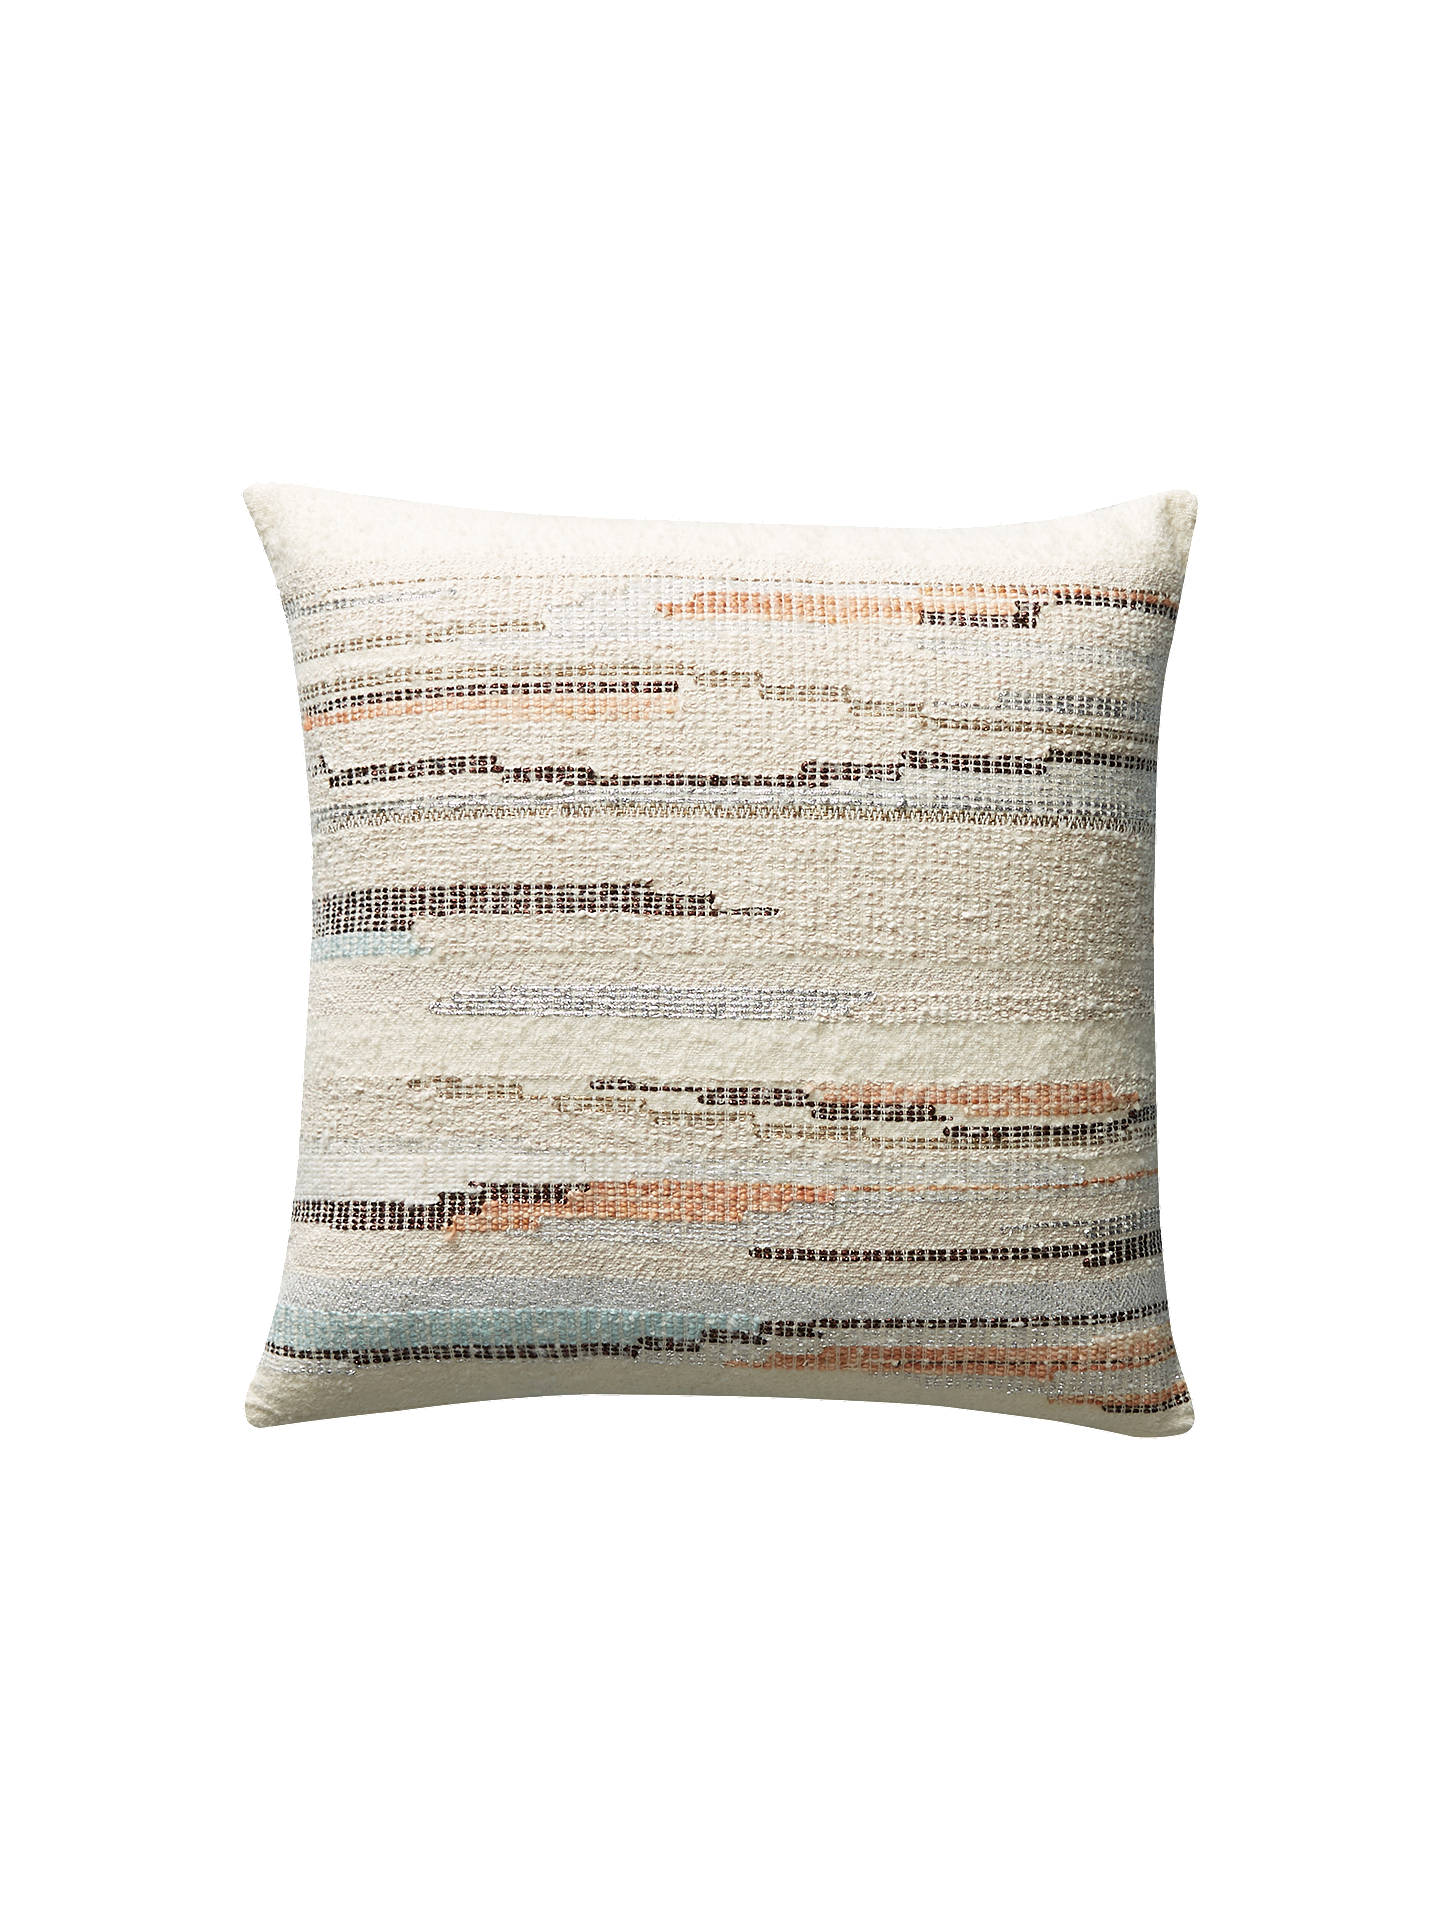 Buy Anthropologie Jess Feury Sunstreak Cushion, Silver/Multi Online at johnlewis.com